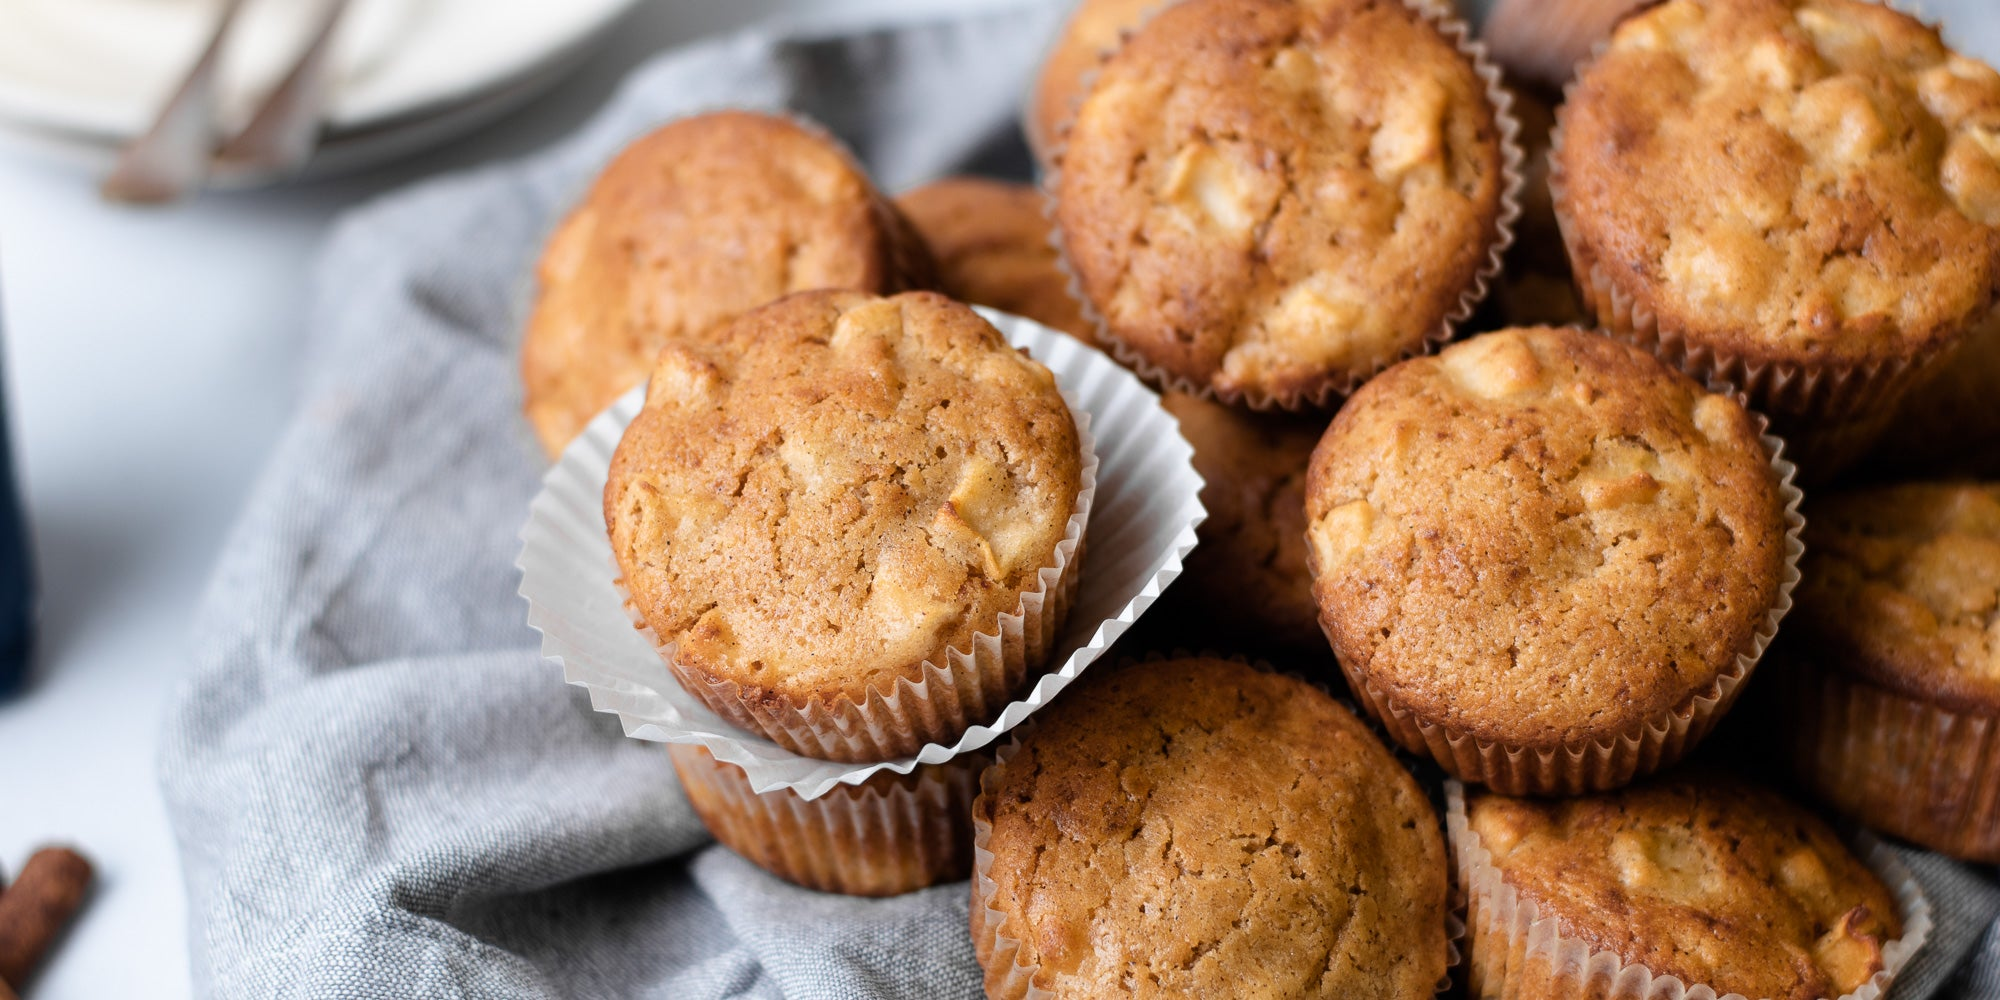 Close up of Calorie Conscious Apple & Cinnamon Muffins on a grey cloth